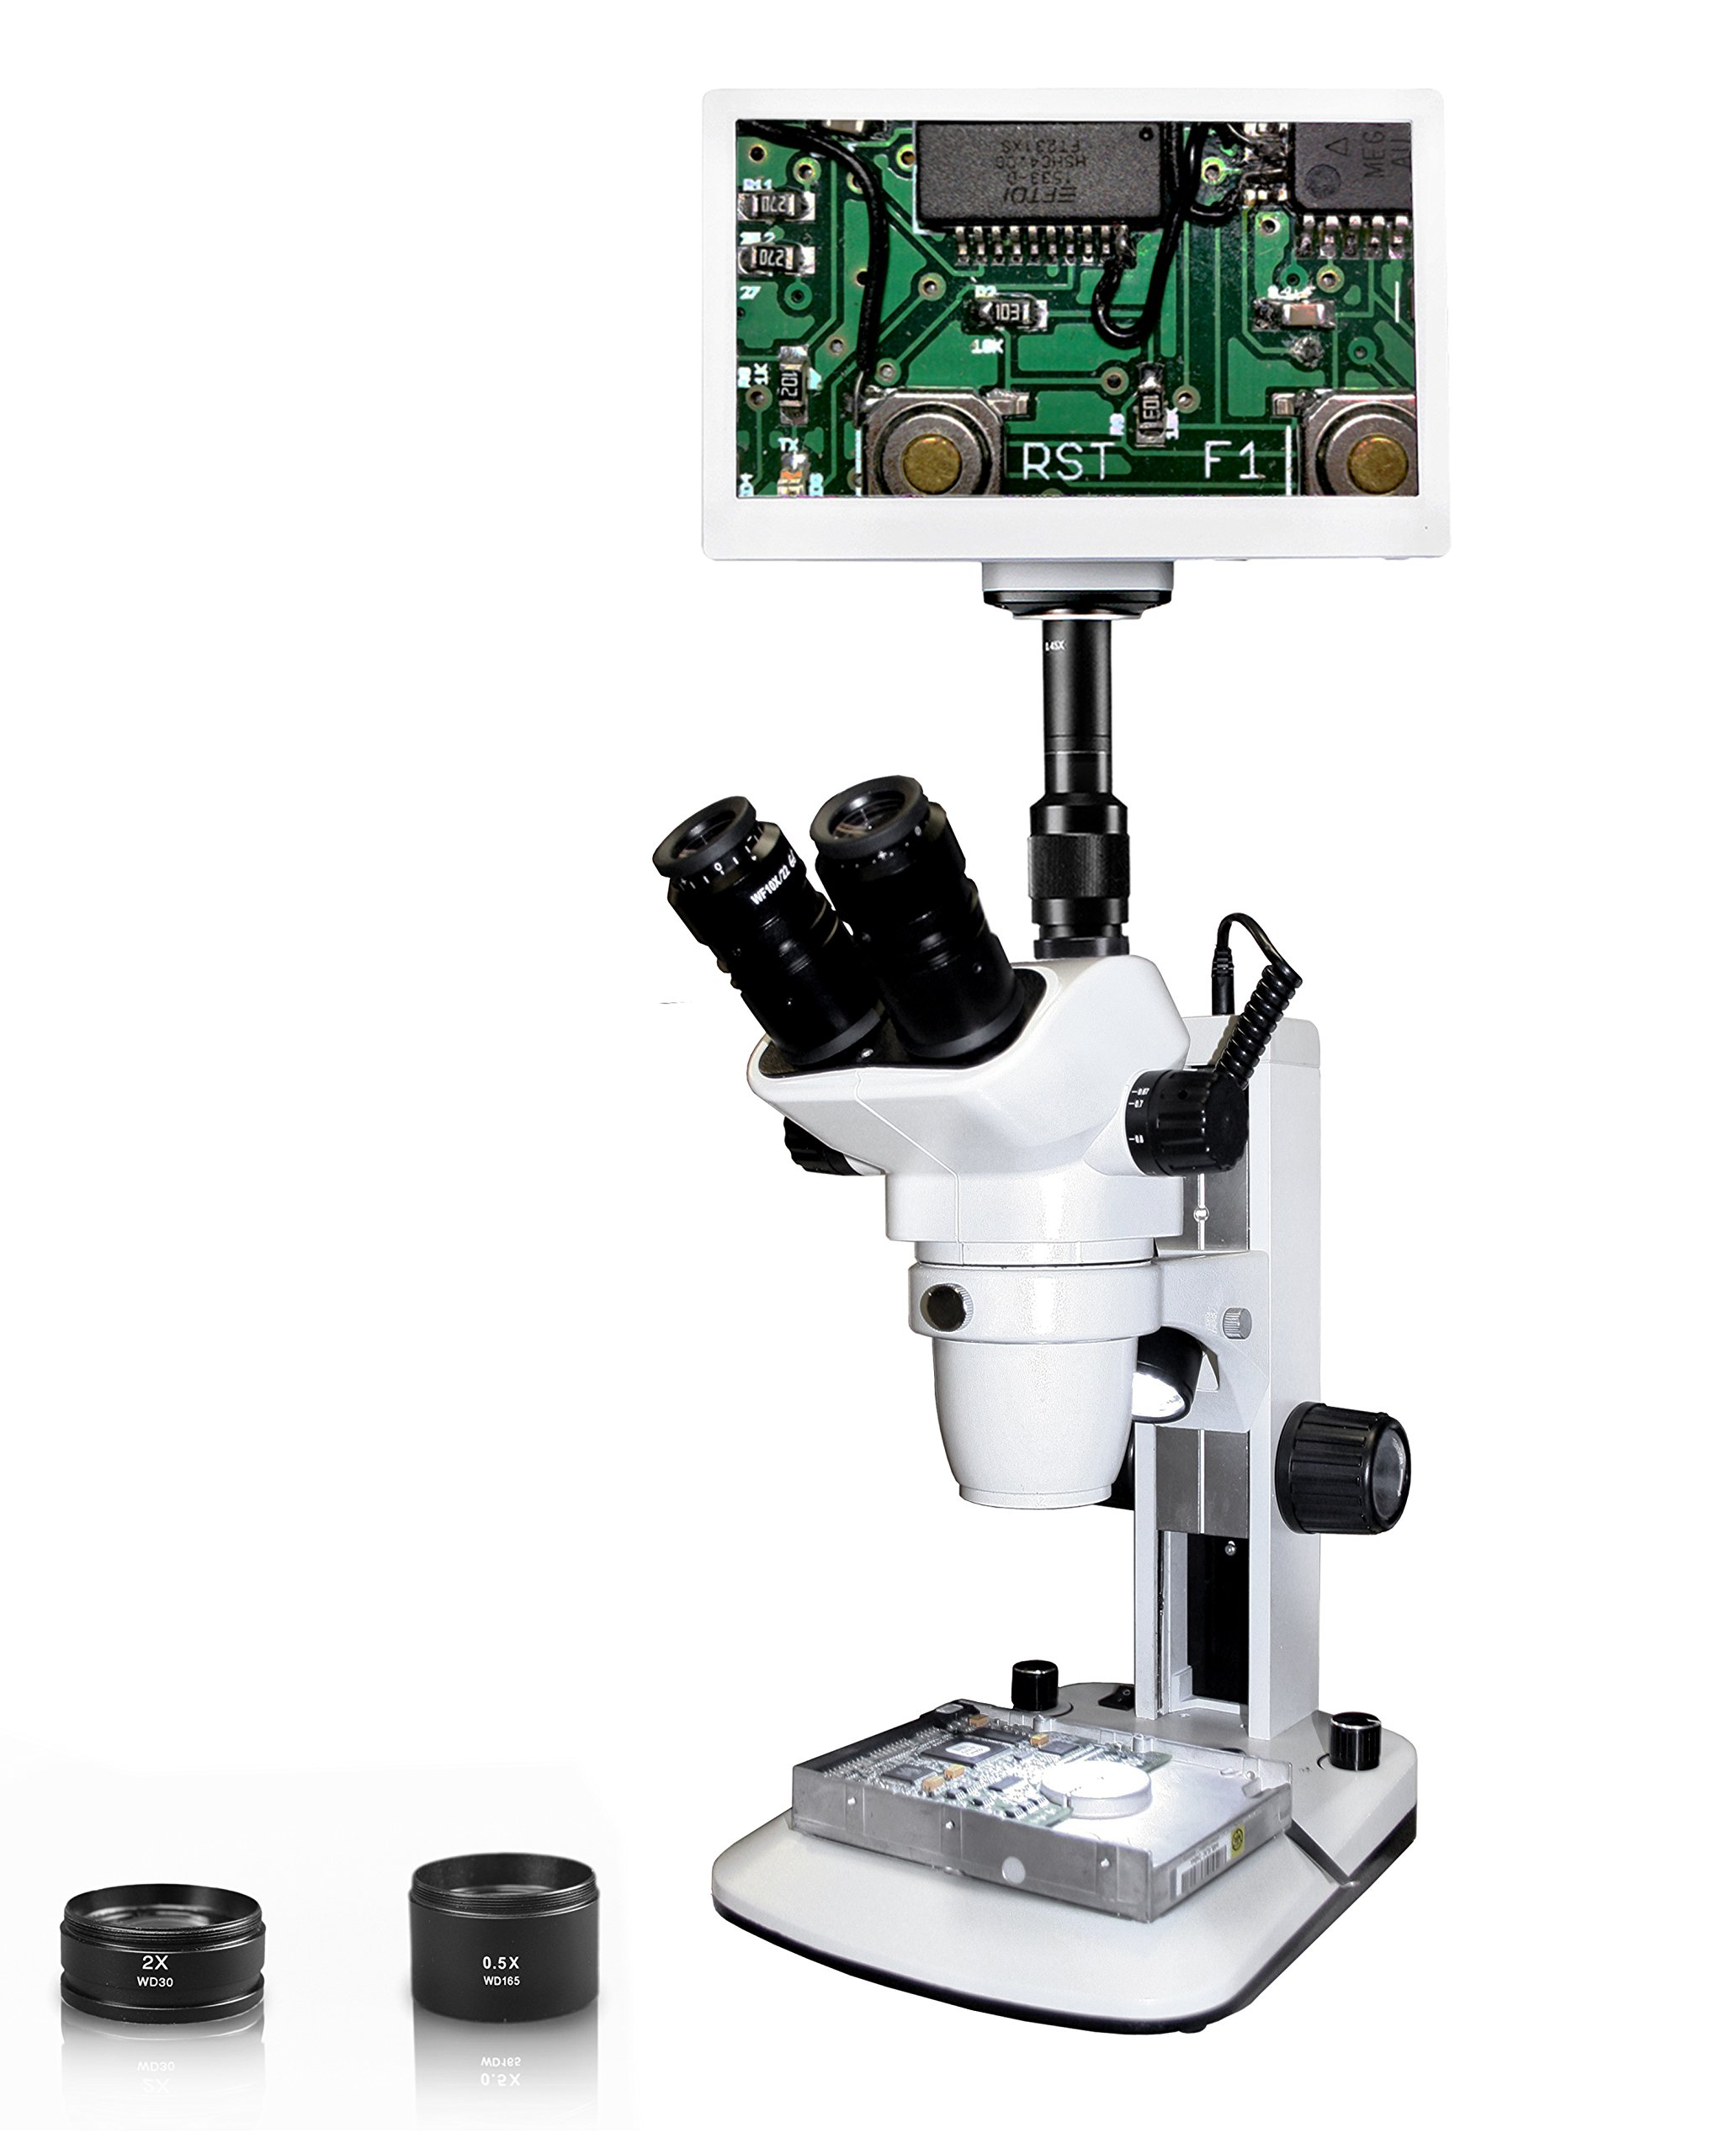 "Vision Scientific VMS0006-TZ-RET11.6 Trinocular Zoom Stereo Microscope, 10x WF Eyepiece, 0.67x—4.5x Zoom, 3.3x—90x Magnification, 0.5x & 2x Aux Lens, LED Light, 11.6"" Retina HD Display w/ 6MP Camera"